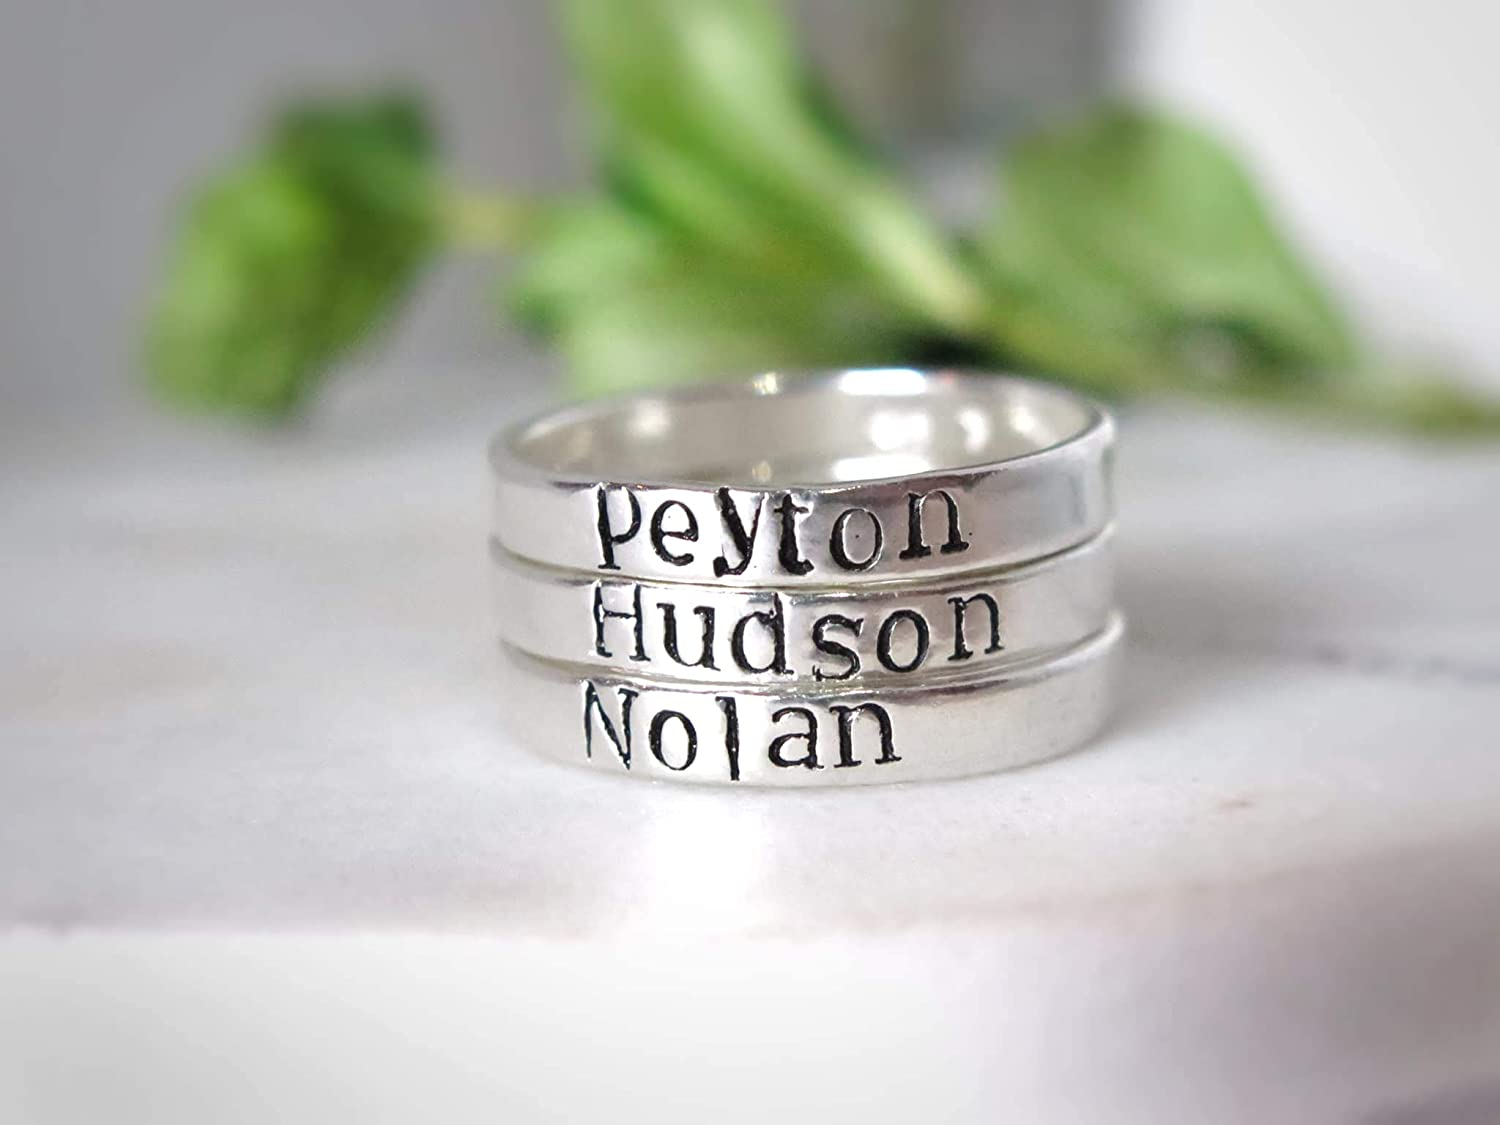 Sterling Silver Name Rings Personalized Sterling Silver Stacking Rings SET OF 3 Hand Stamped Name Rings